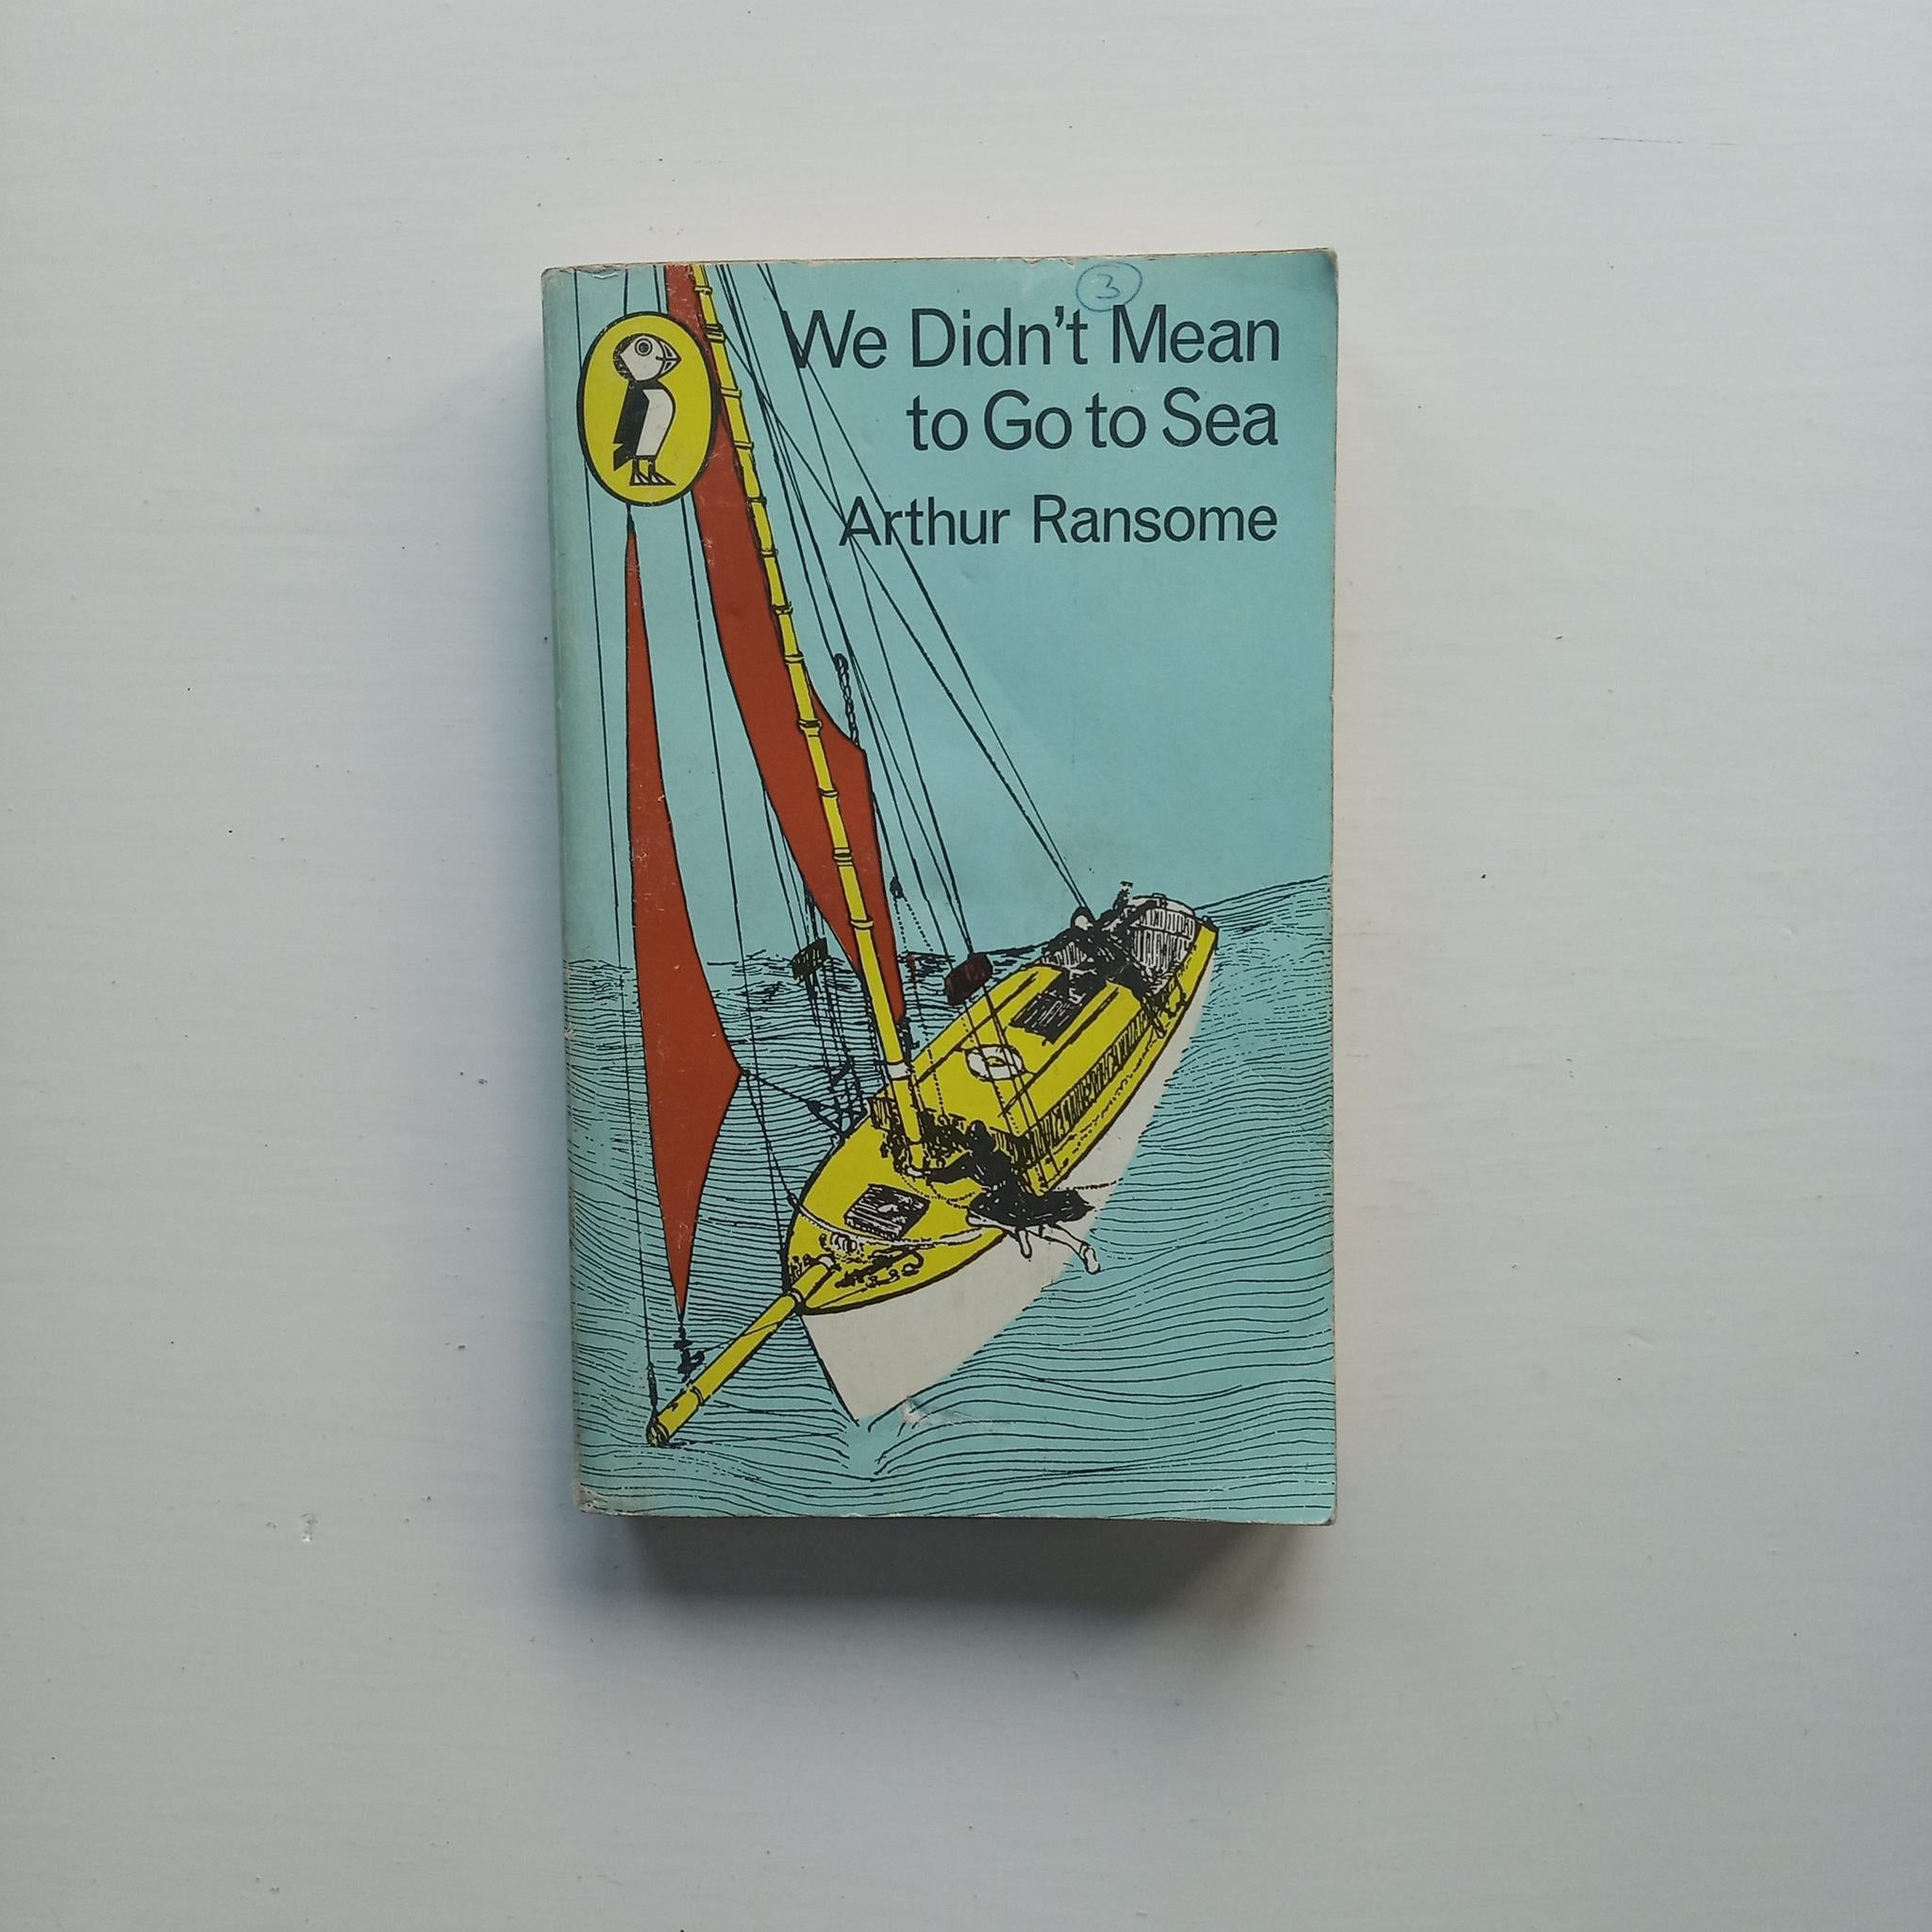 We Didn't Mean to Go to Sea by Arthur Ransome